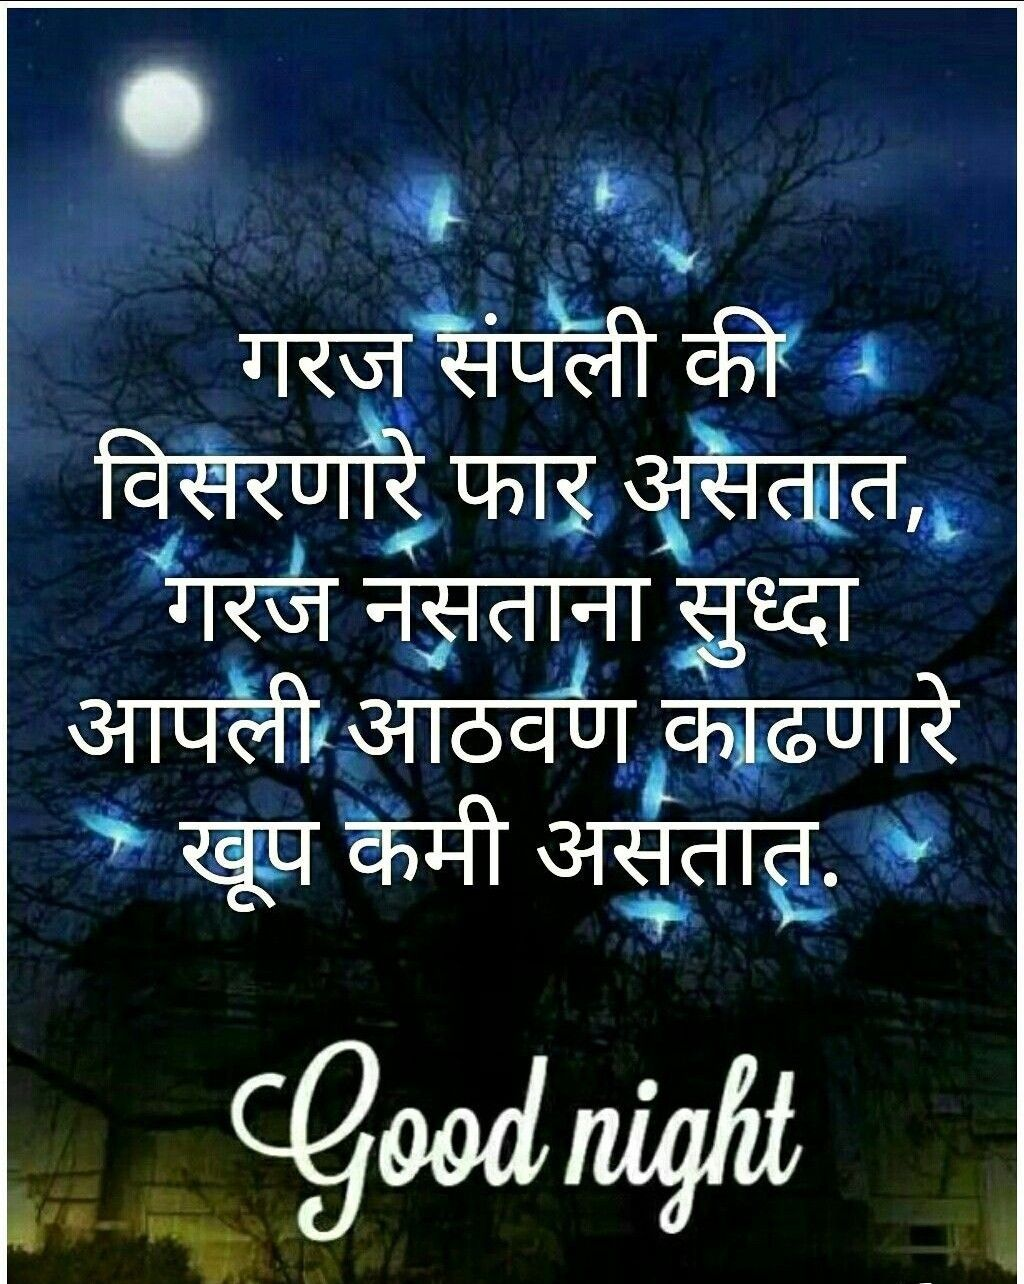 Good Night Images With Quotes In Marathi